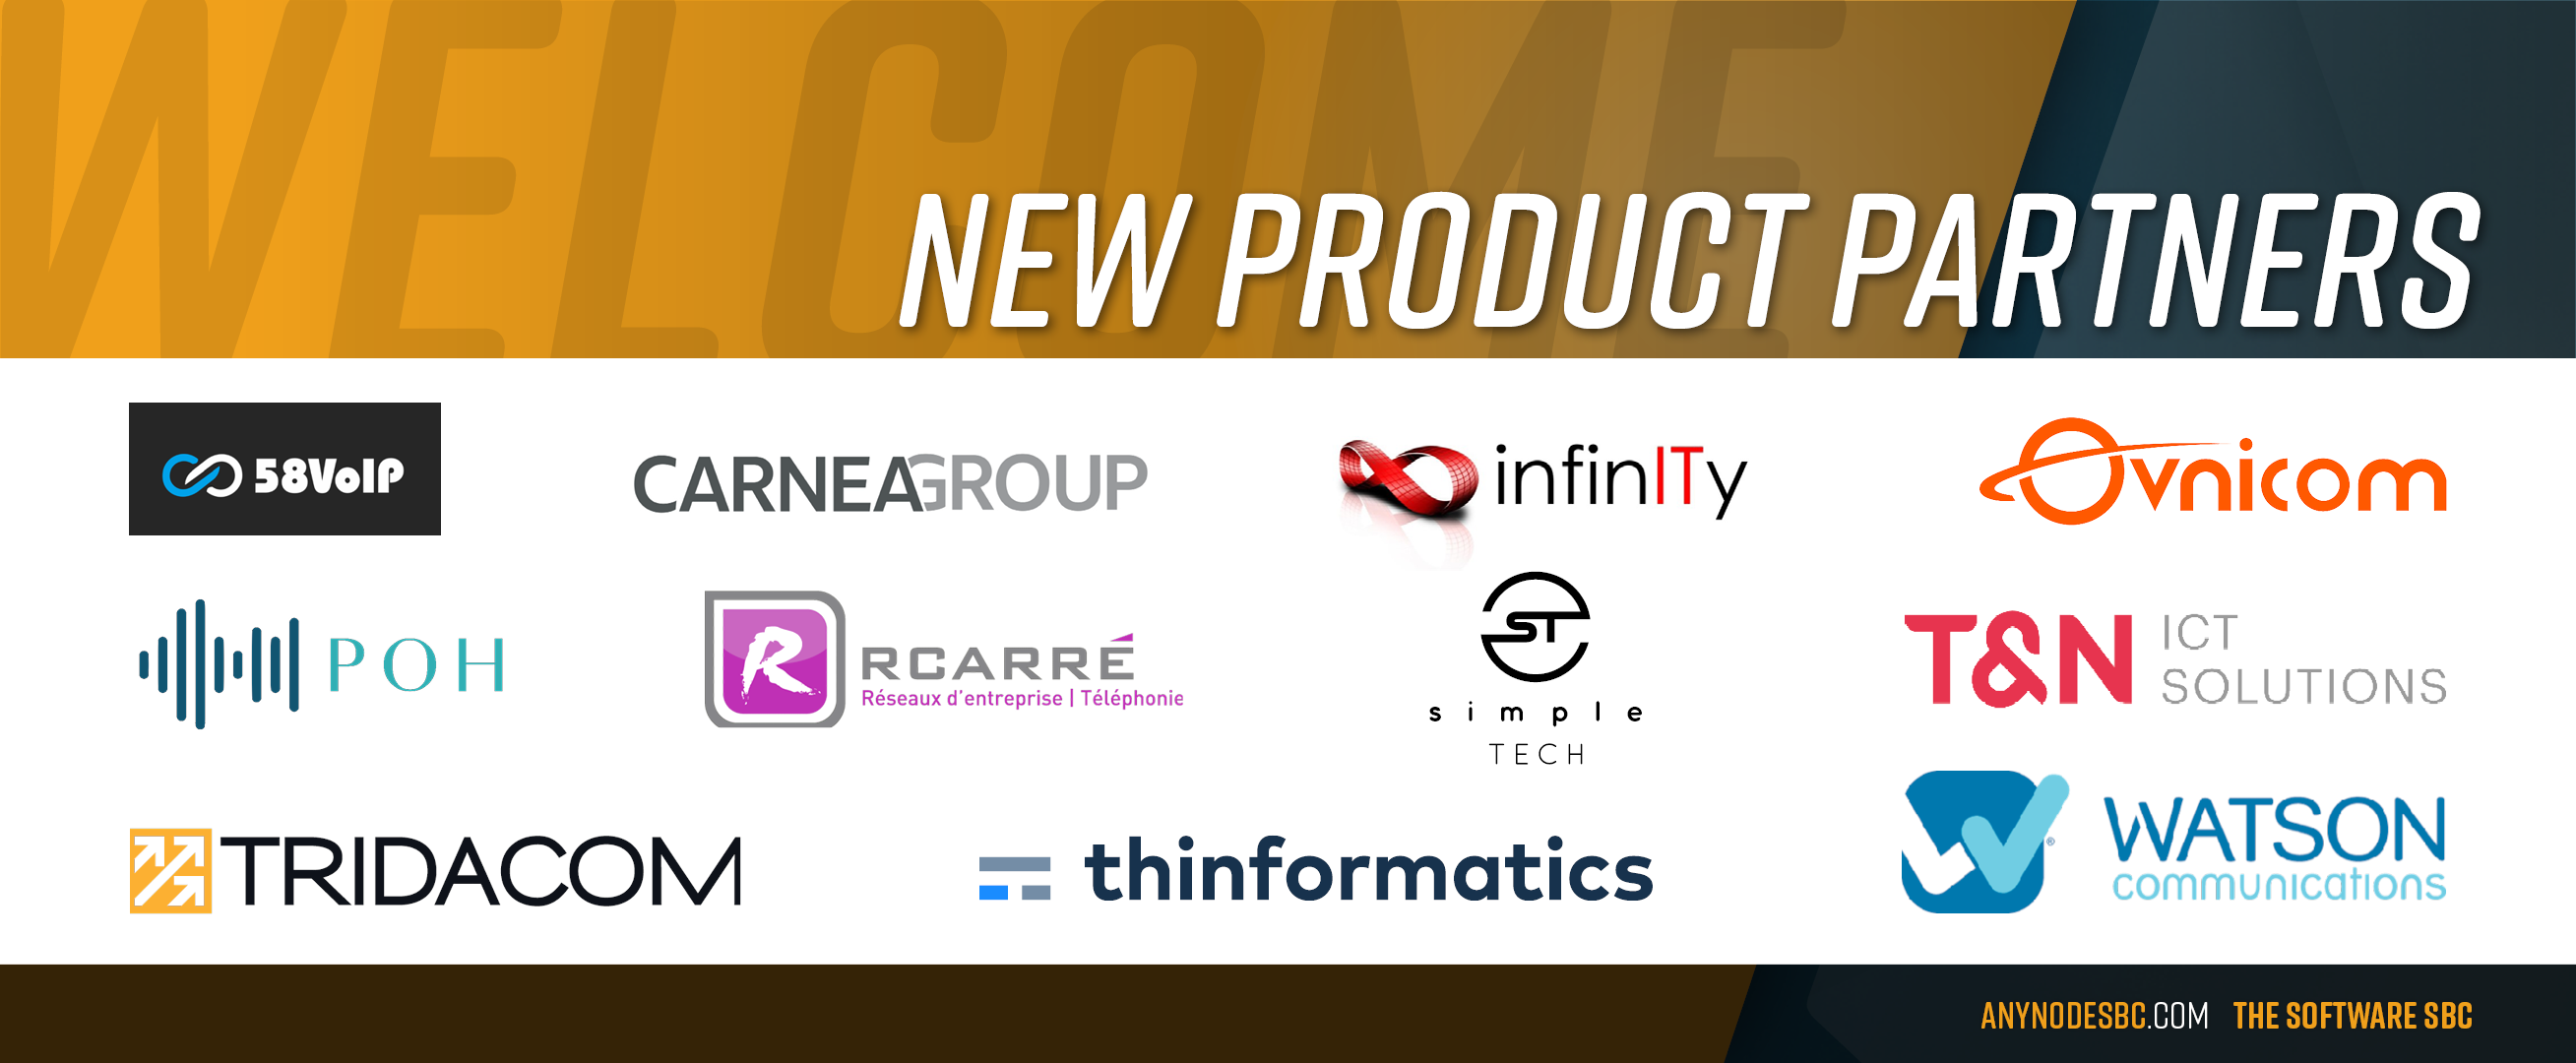 New anynode Product Partners in June 2020!